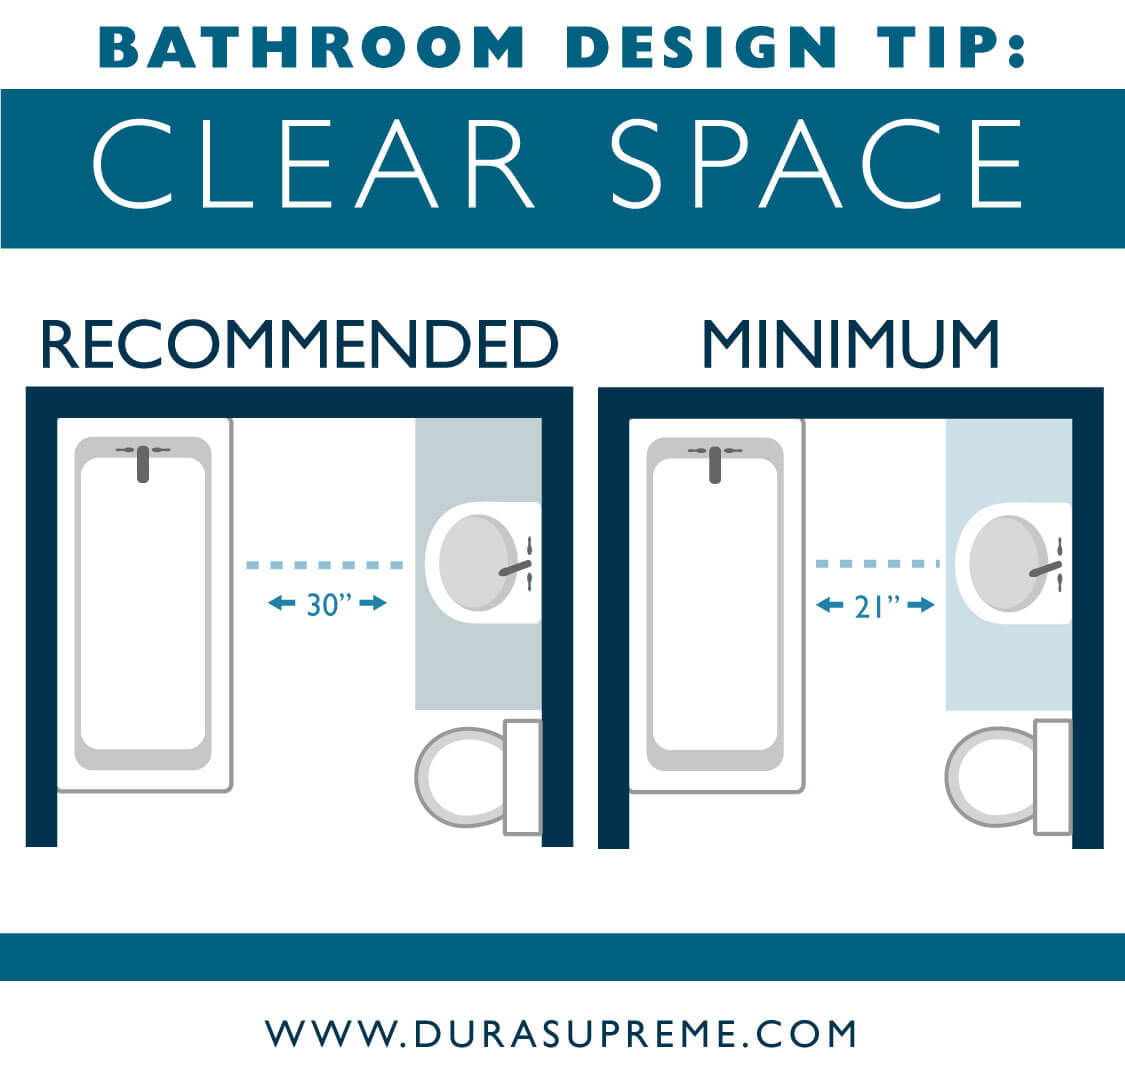 Bathroom design tip - Recommended and minimum Clear Space floor walk way. Bathroom design guidelines from Dura Supreme Cabinetry.